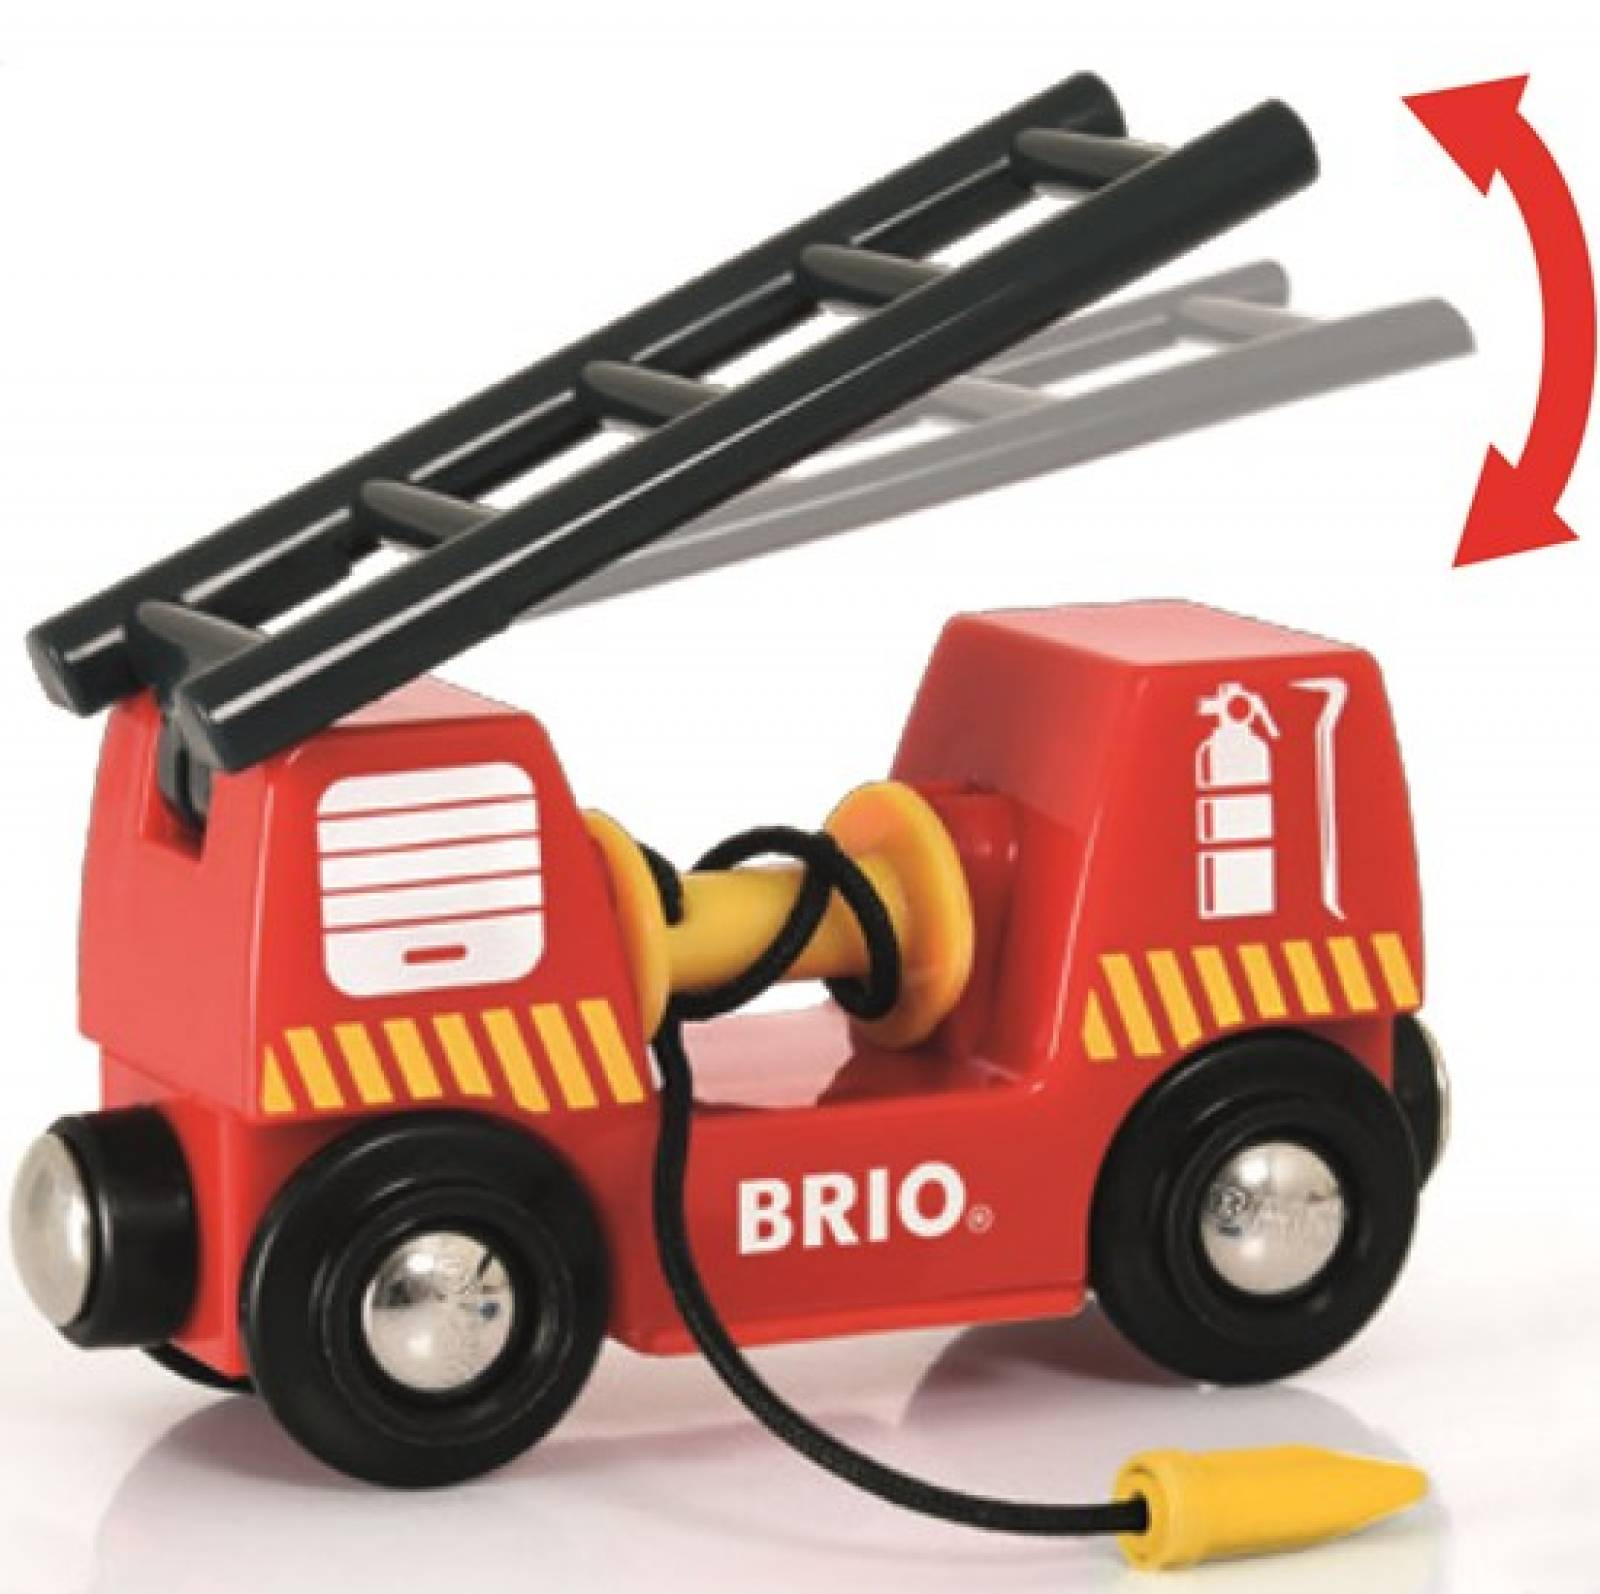 Emergency Fire Engine BRIO Wooden Railway Age 3+ thumbnails